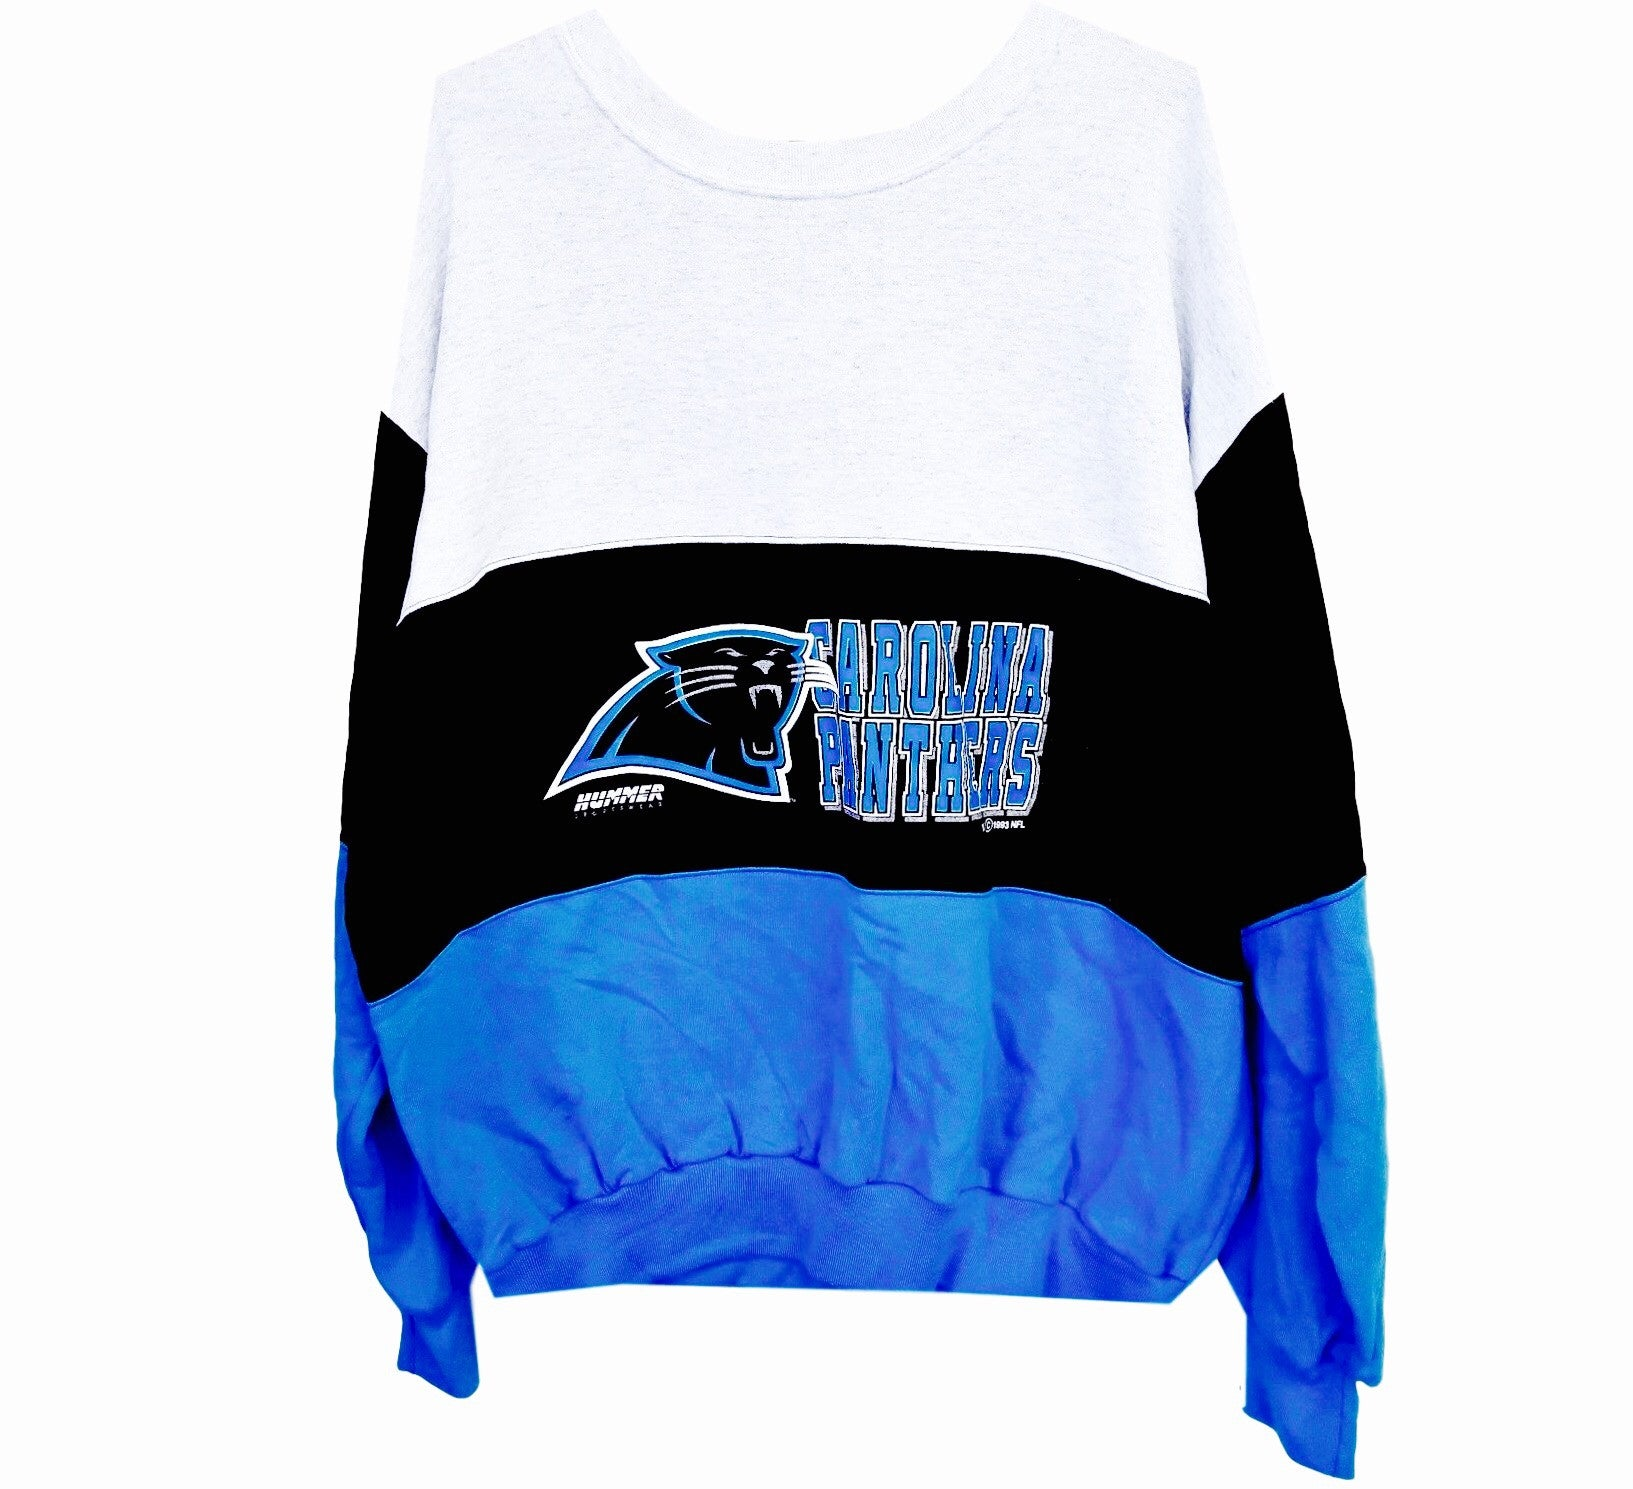 Panthers Vintage Sweatshirt